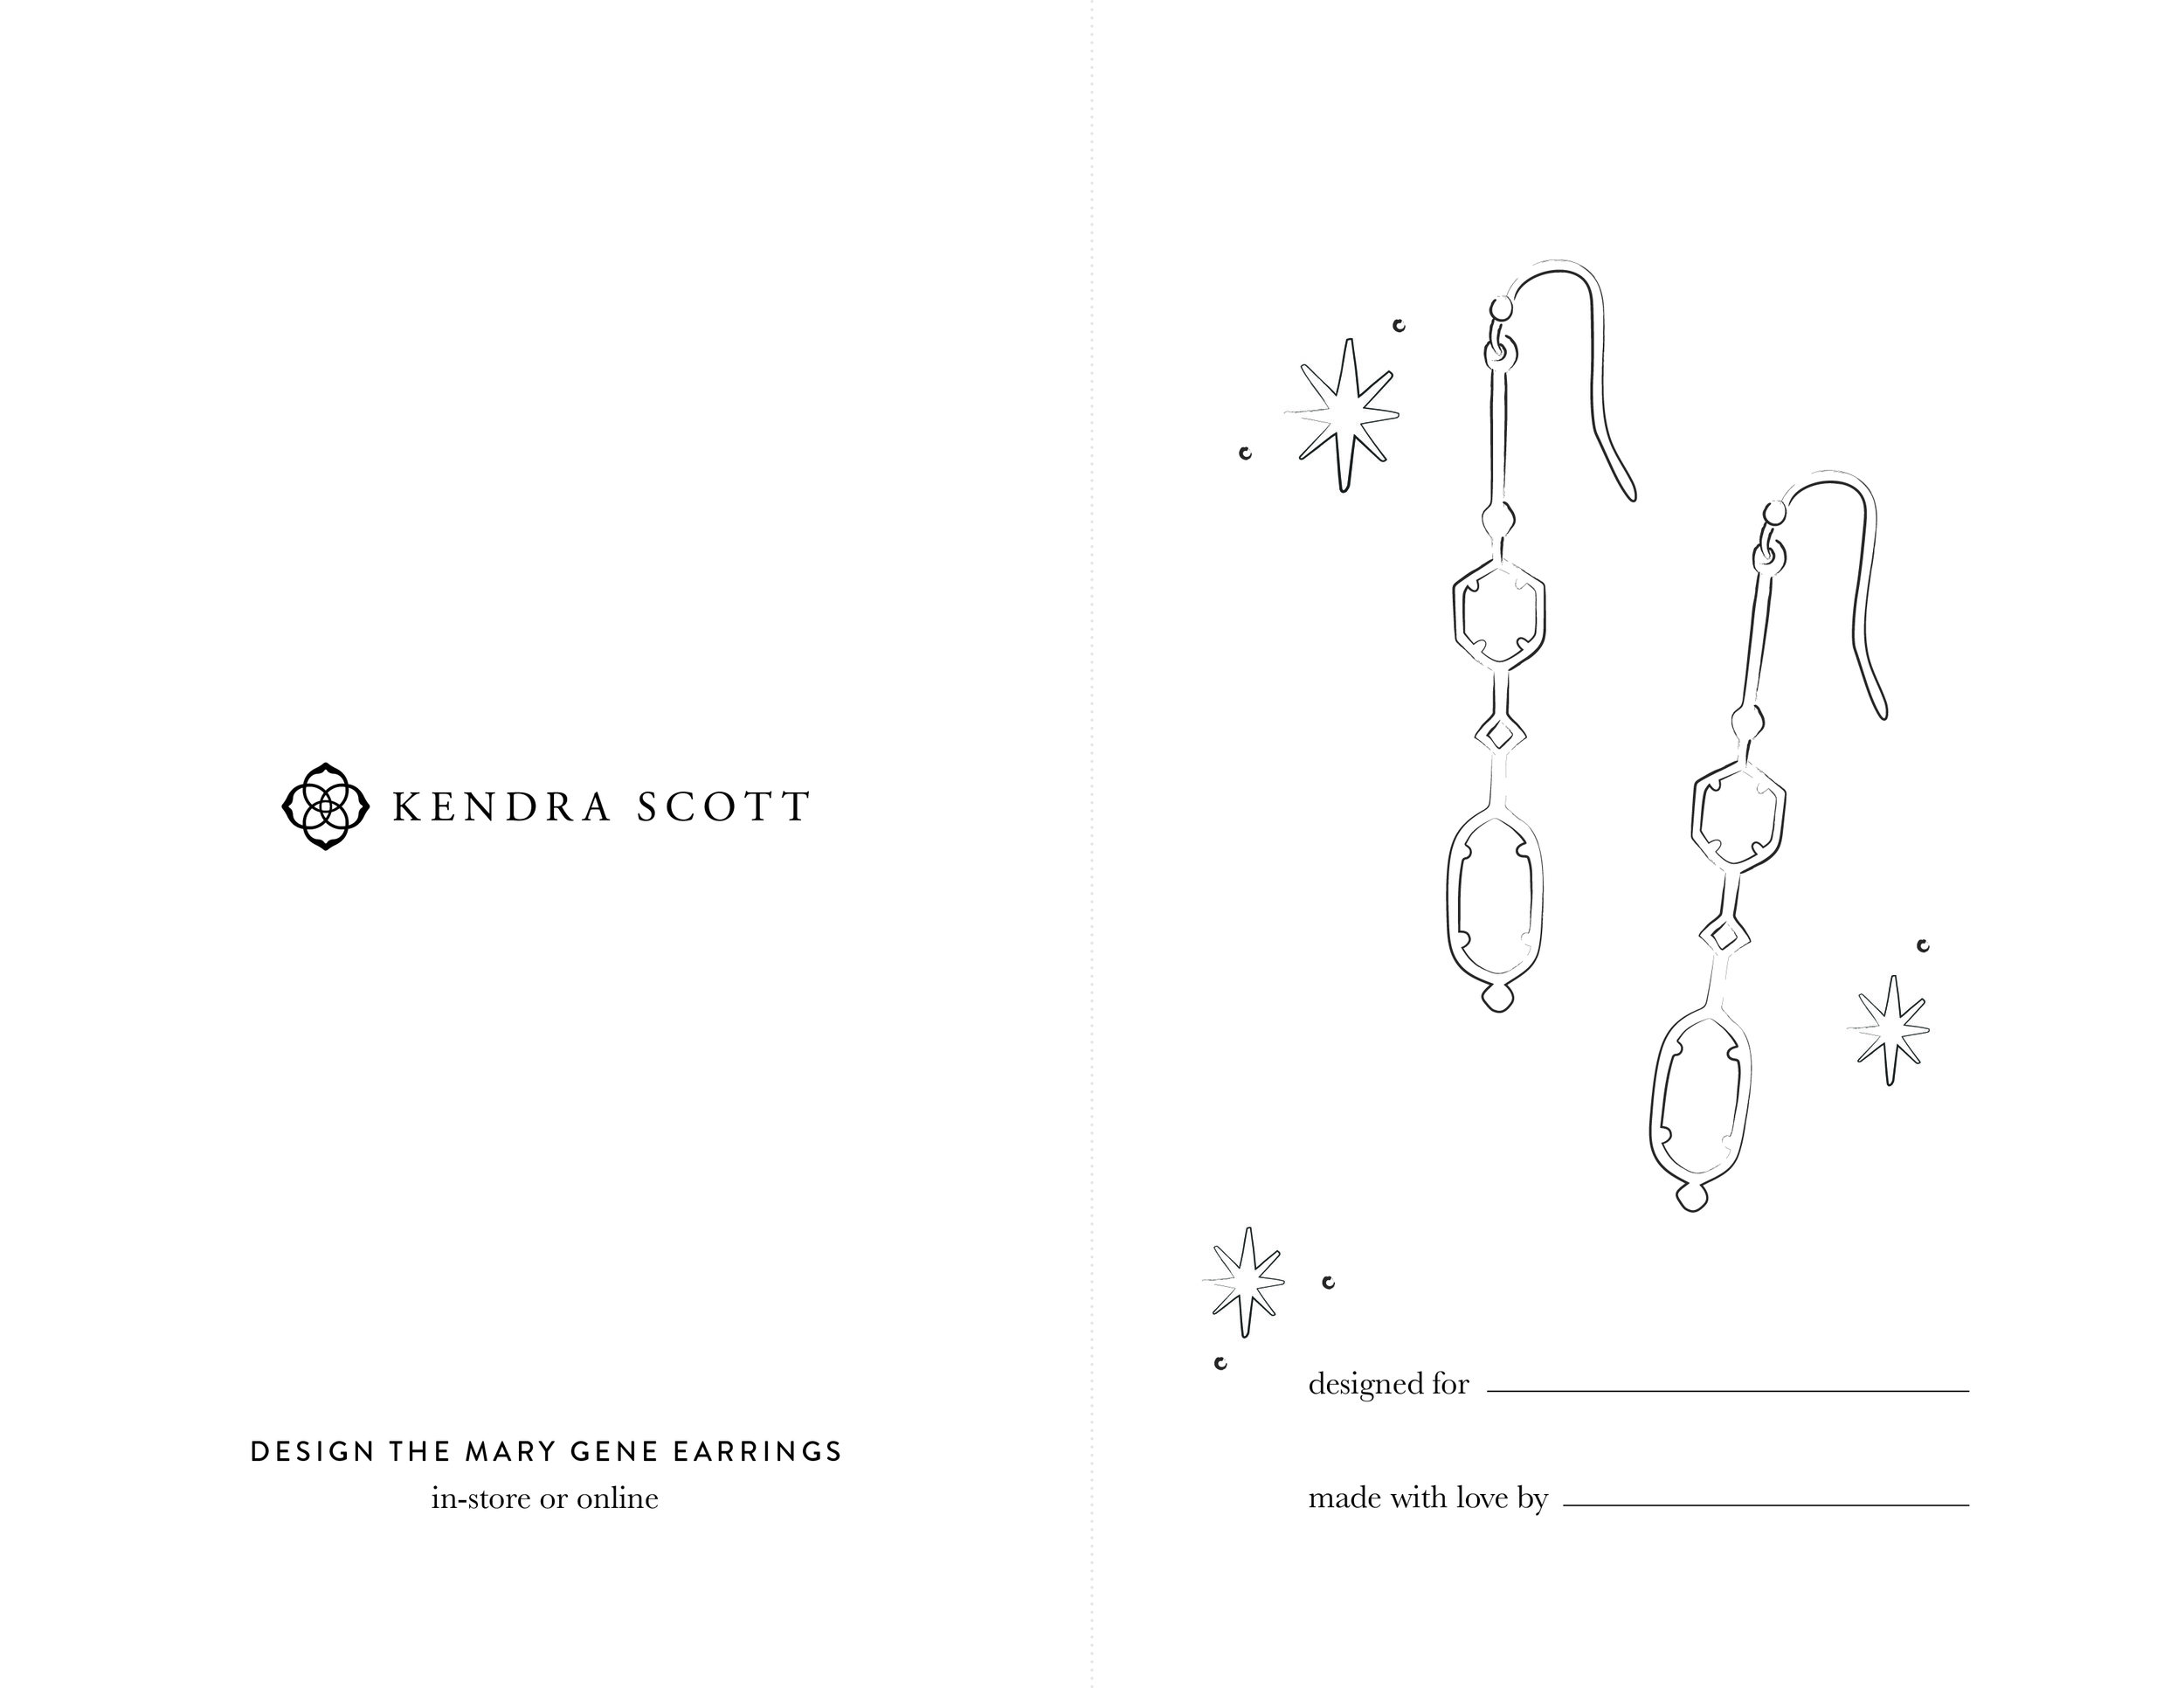 Kendra-Scott-Coloring-Sheets-02.jpg